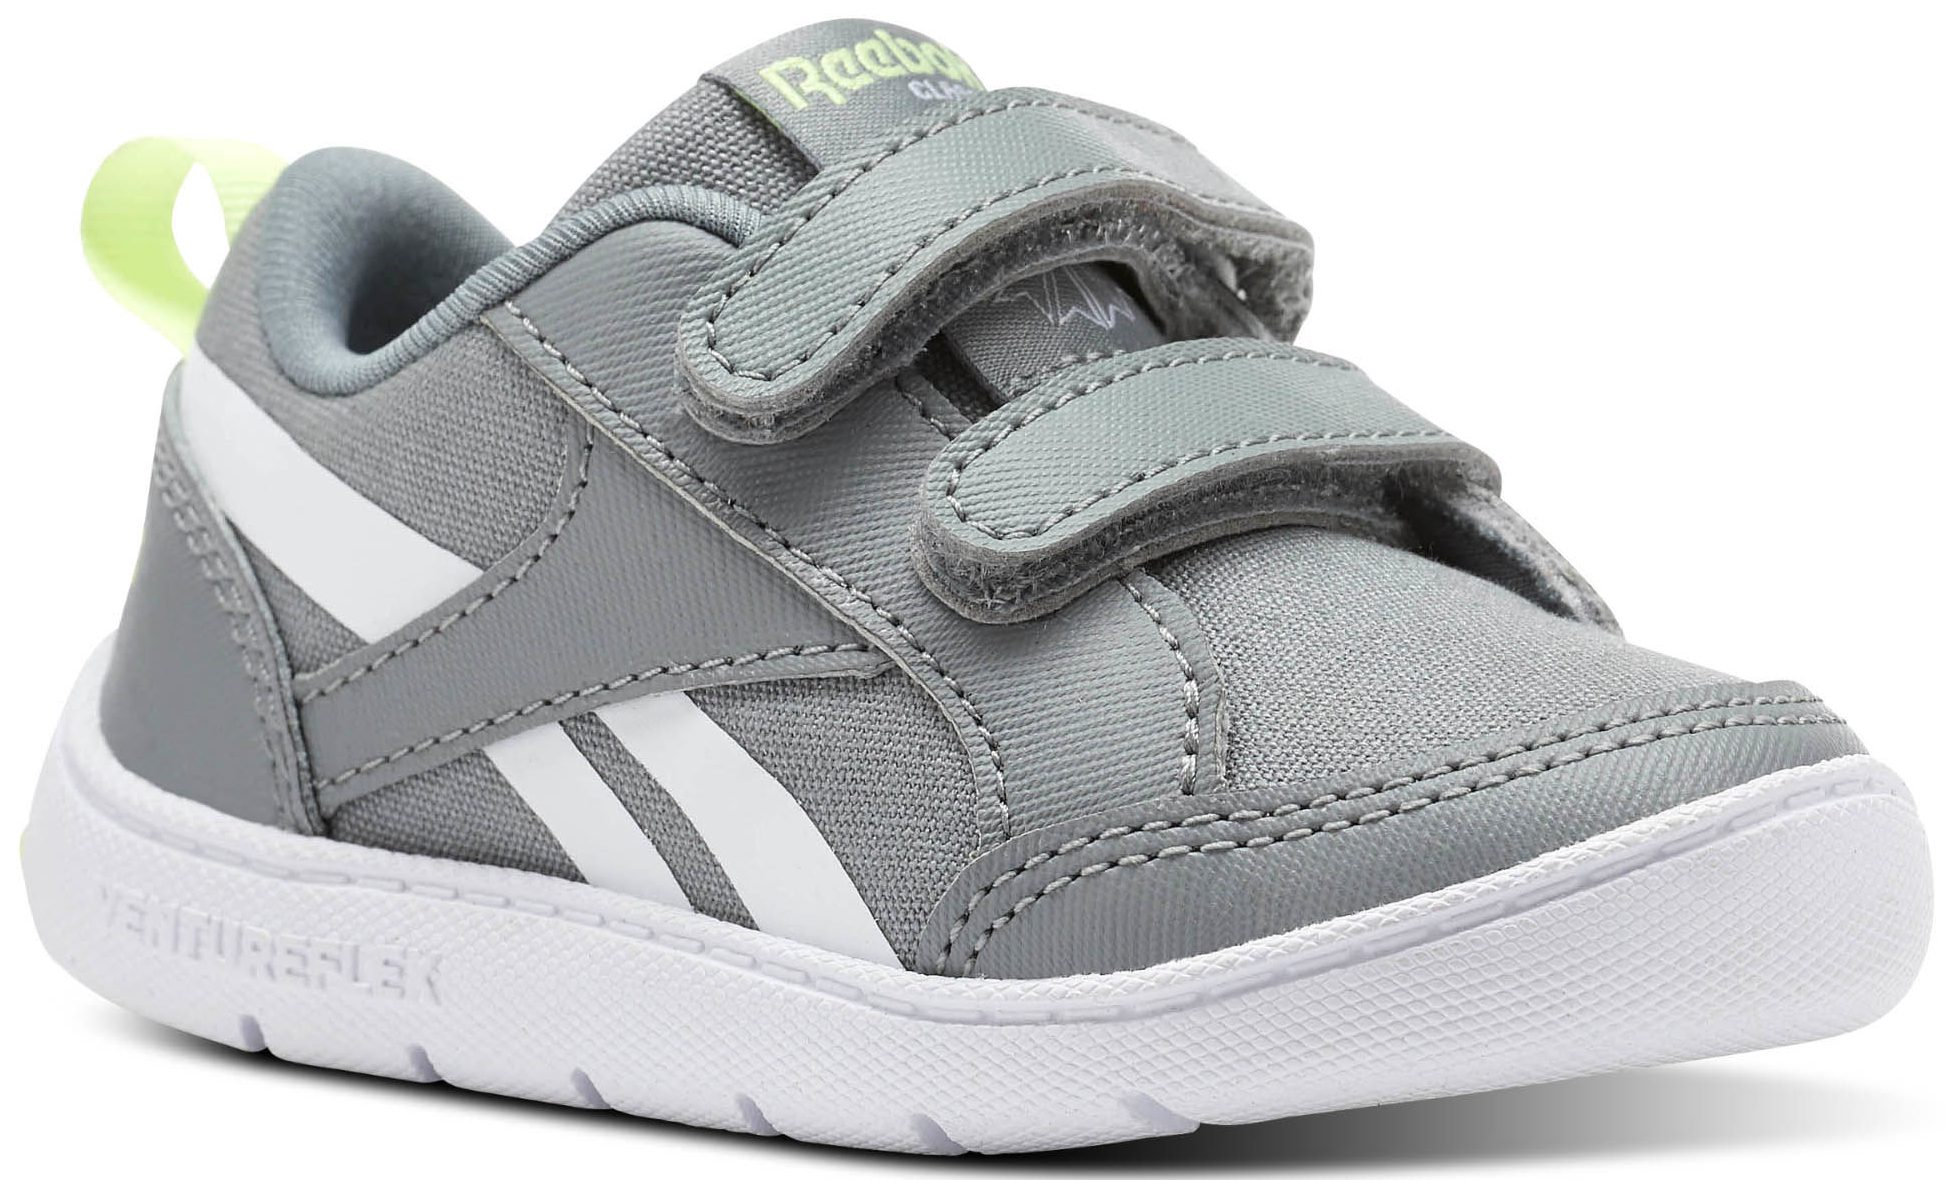 Reebok Kids Almotio 3.0 Pre-School Shoes  19.99 (regularly  40) Total after  BOGO 50% off    29.98. Shipping is free. Final cost  29.98 shipped – just   14.99 ... d3a3524d0